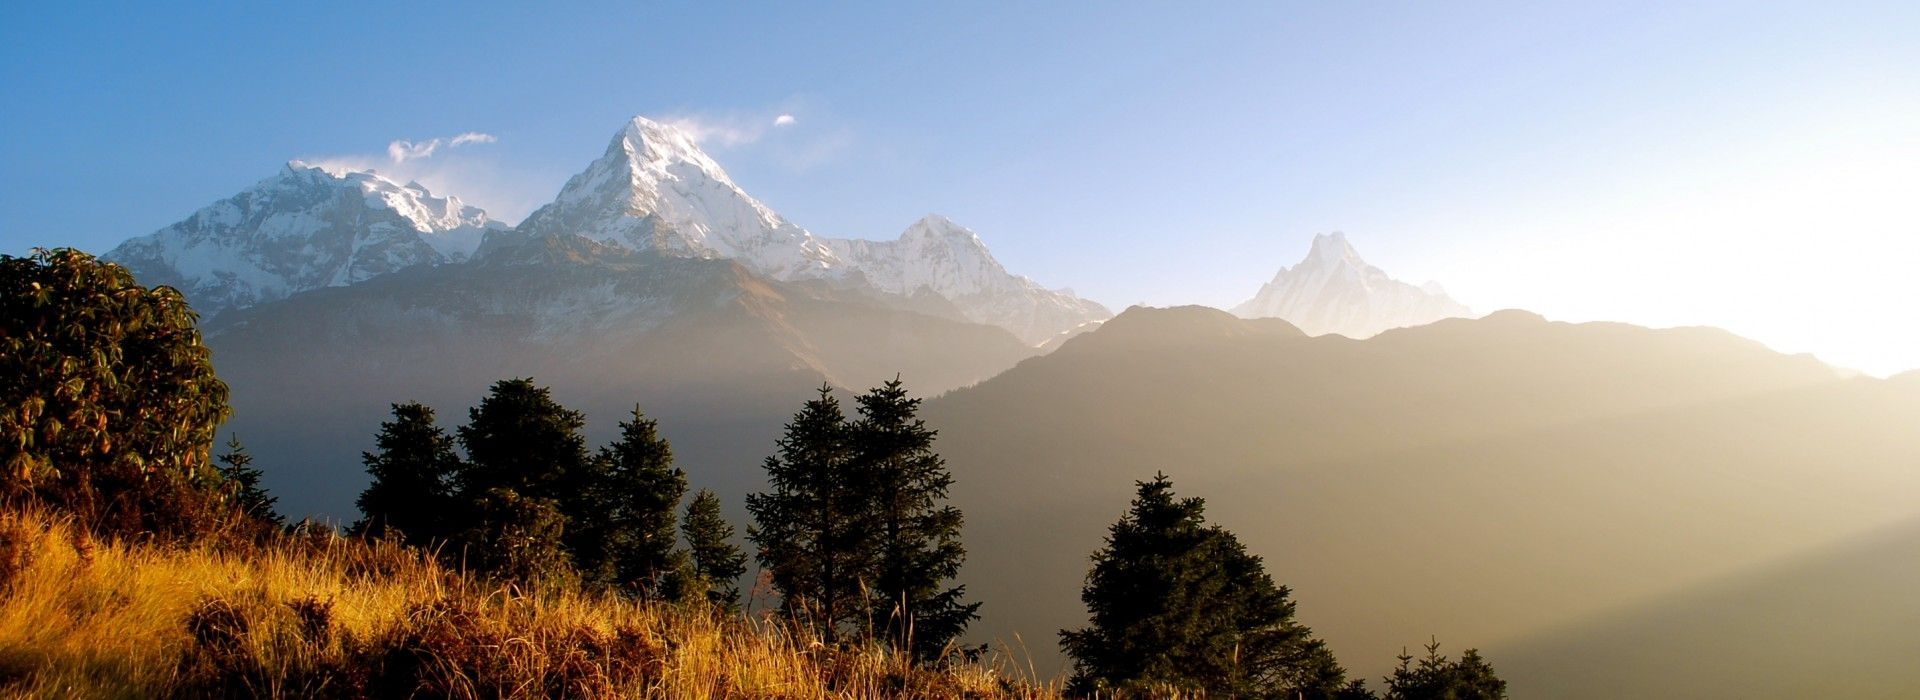 Adventure and sport activities Tours in Everest Base Camp - 3 Passes trek